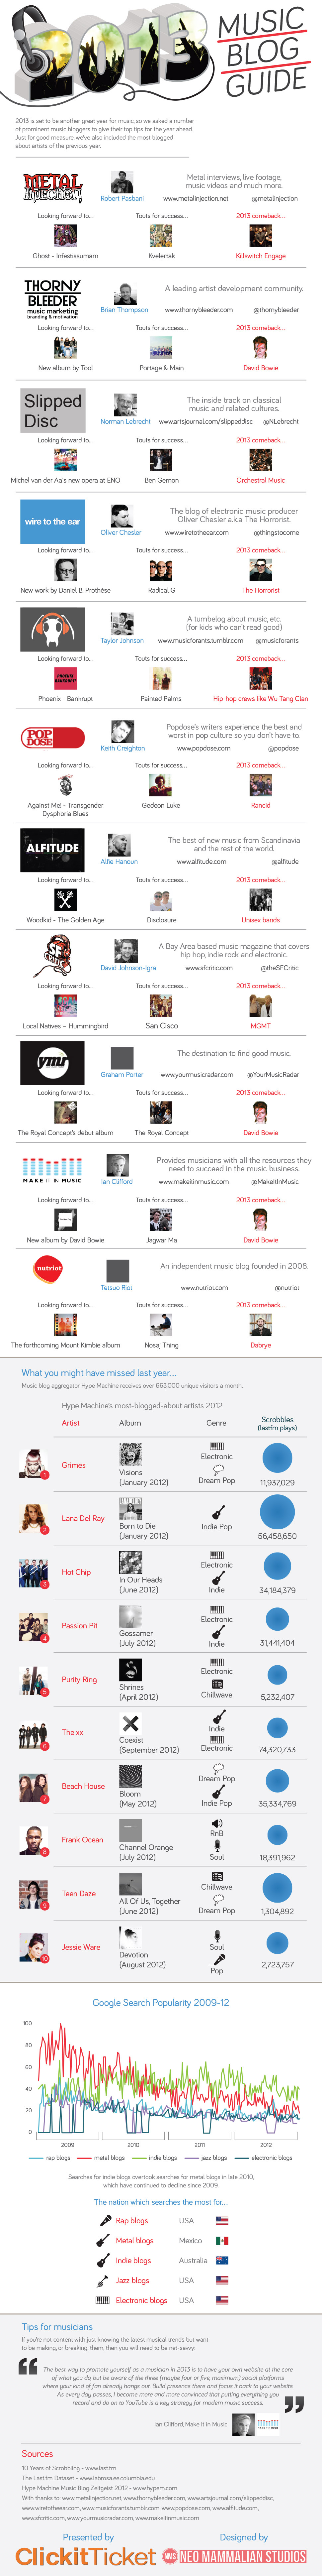 2013 Music Blog Guide [Infographic] image bloggersguidetomusic2013